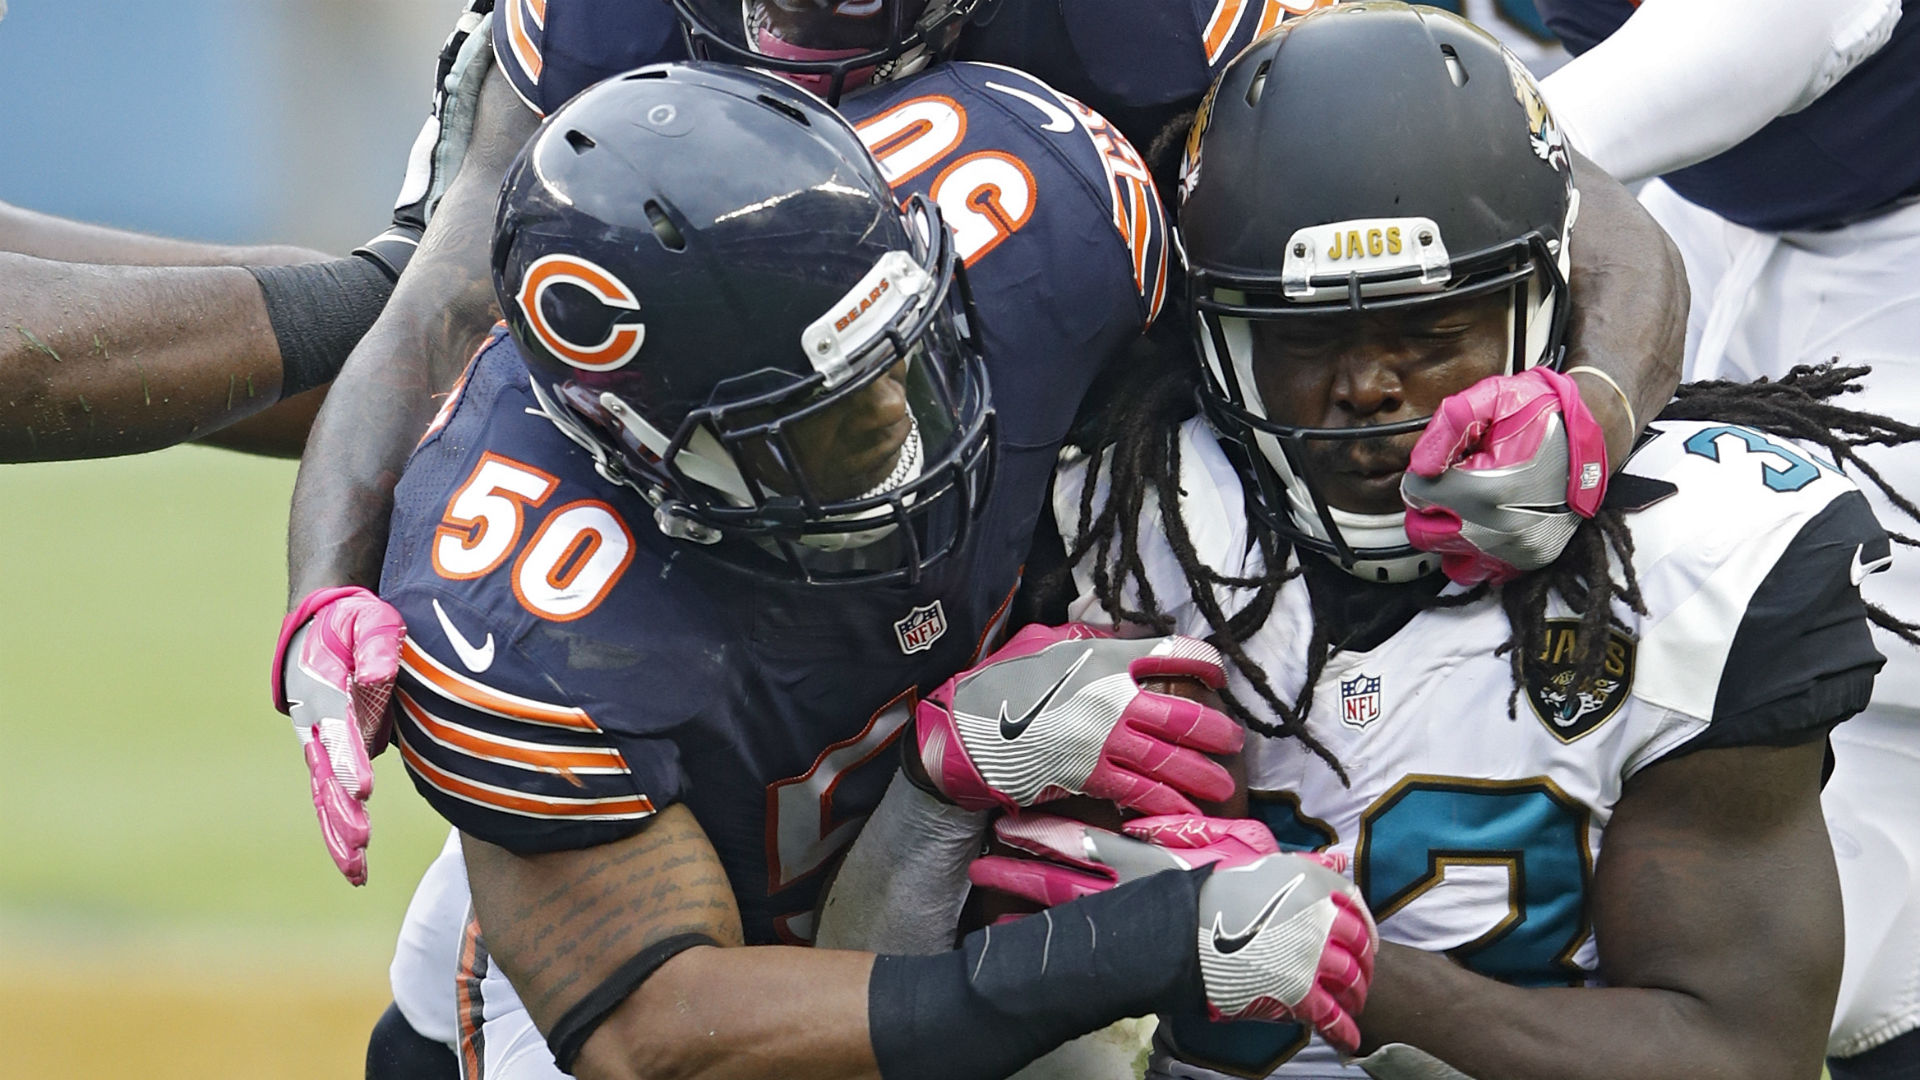 Bears linebacker saves choking man at ABIA